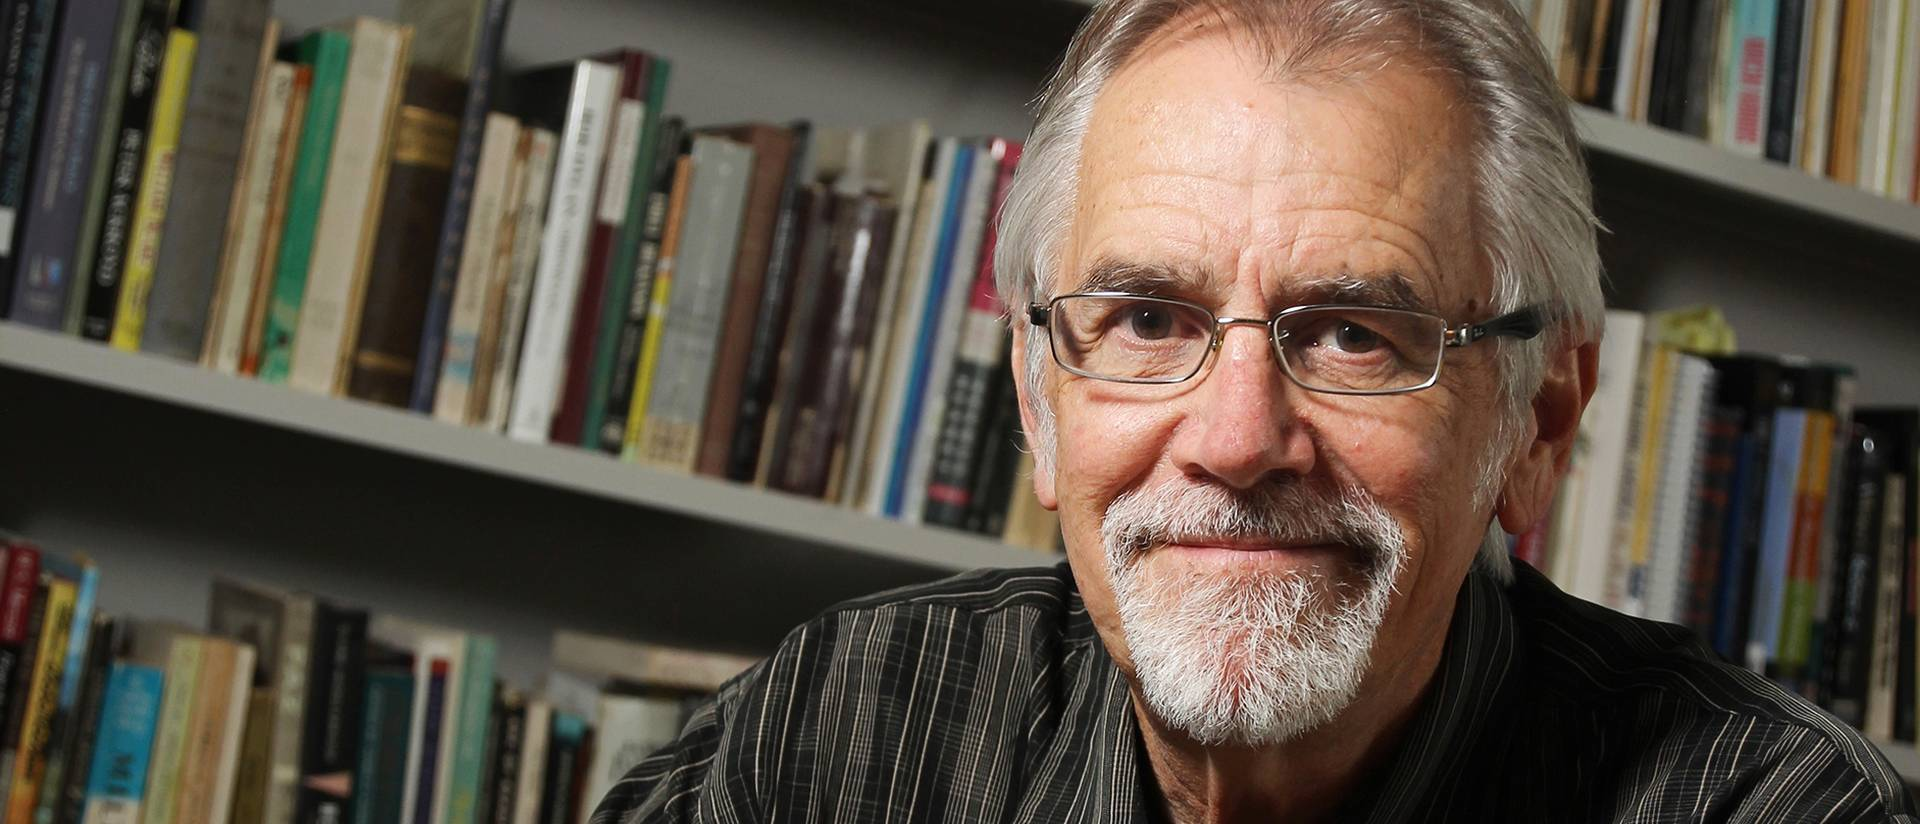 Max Garland, UW-Eau Claire professor of English, served as Wisconsin's poet laureate from January 2013 through December 2014.